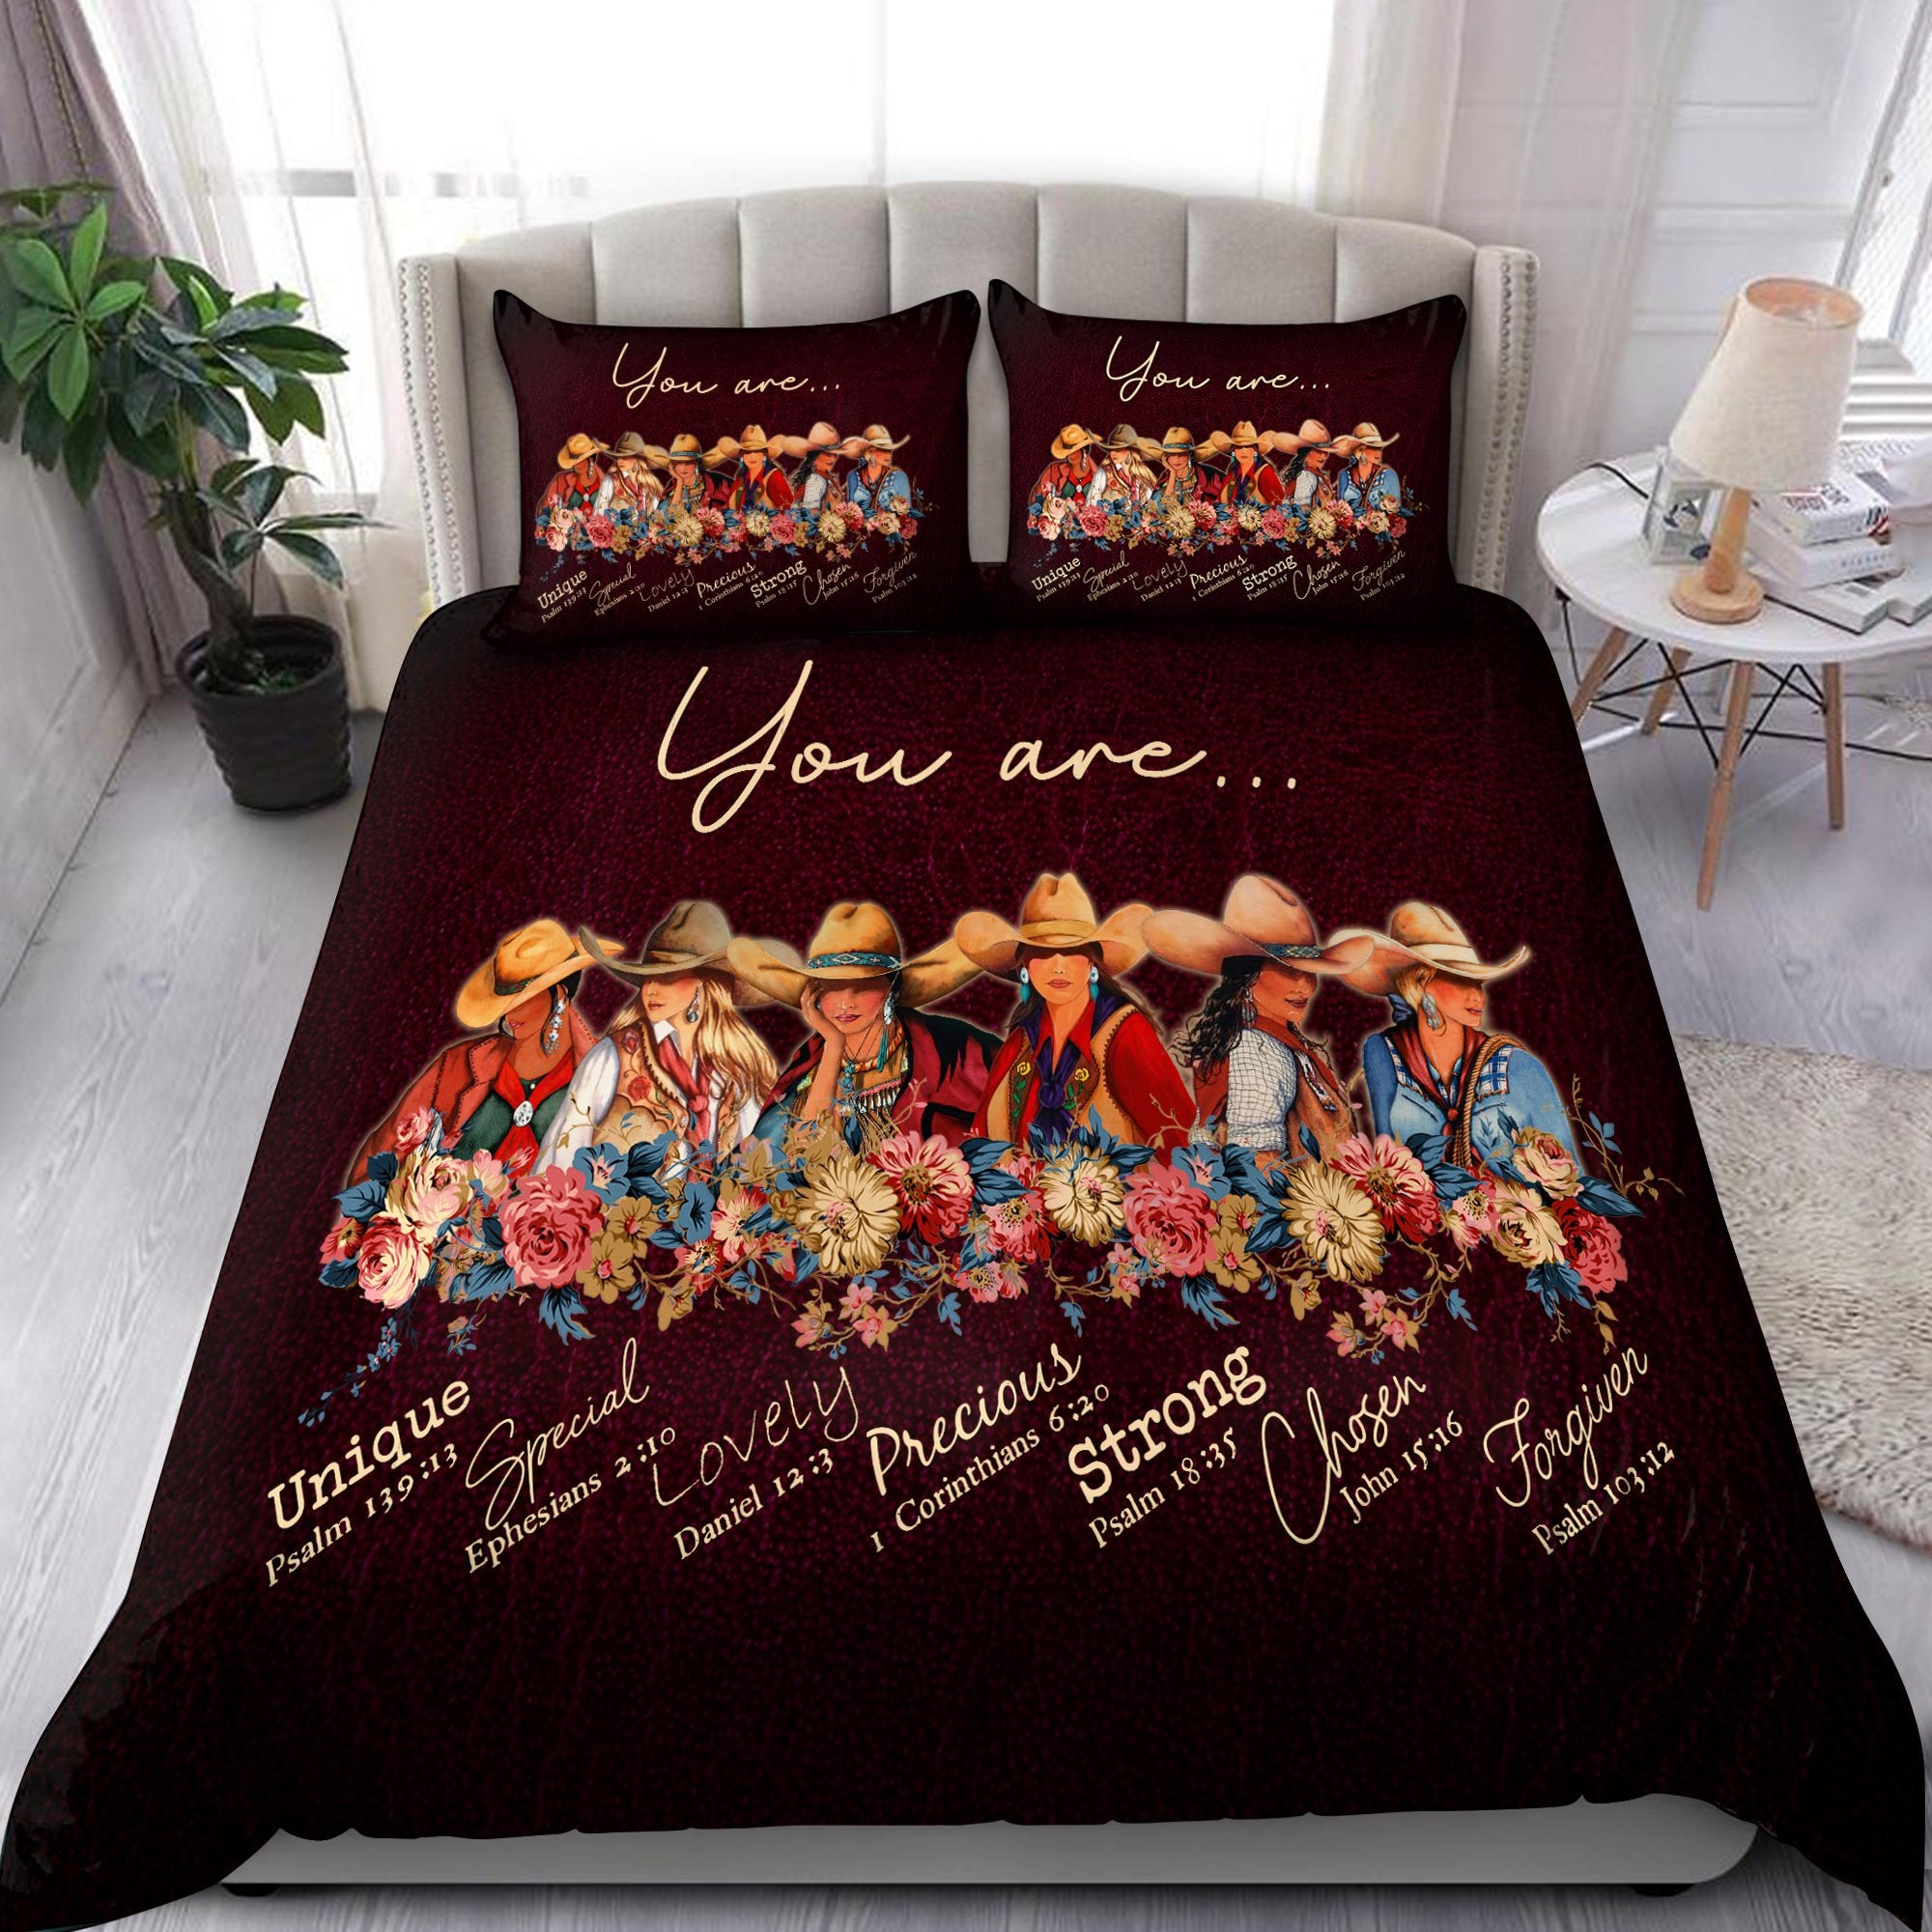 Cowgirl-Gods Say You Are Bedding Set Pi31072001